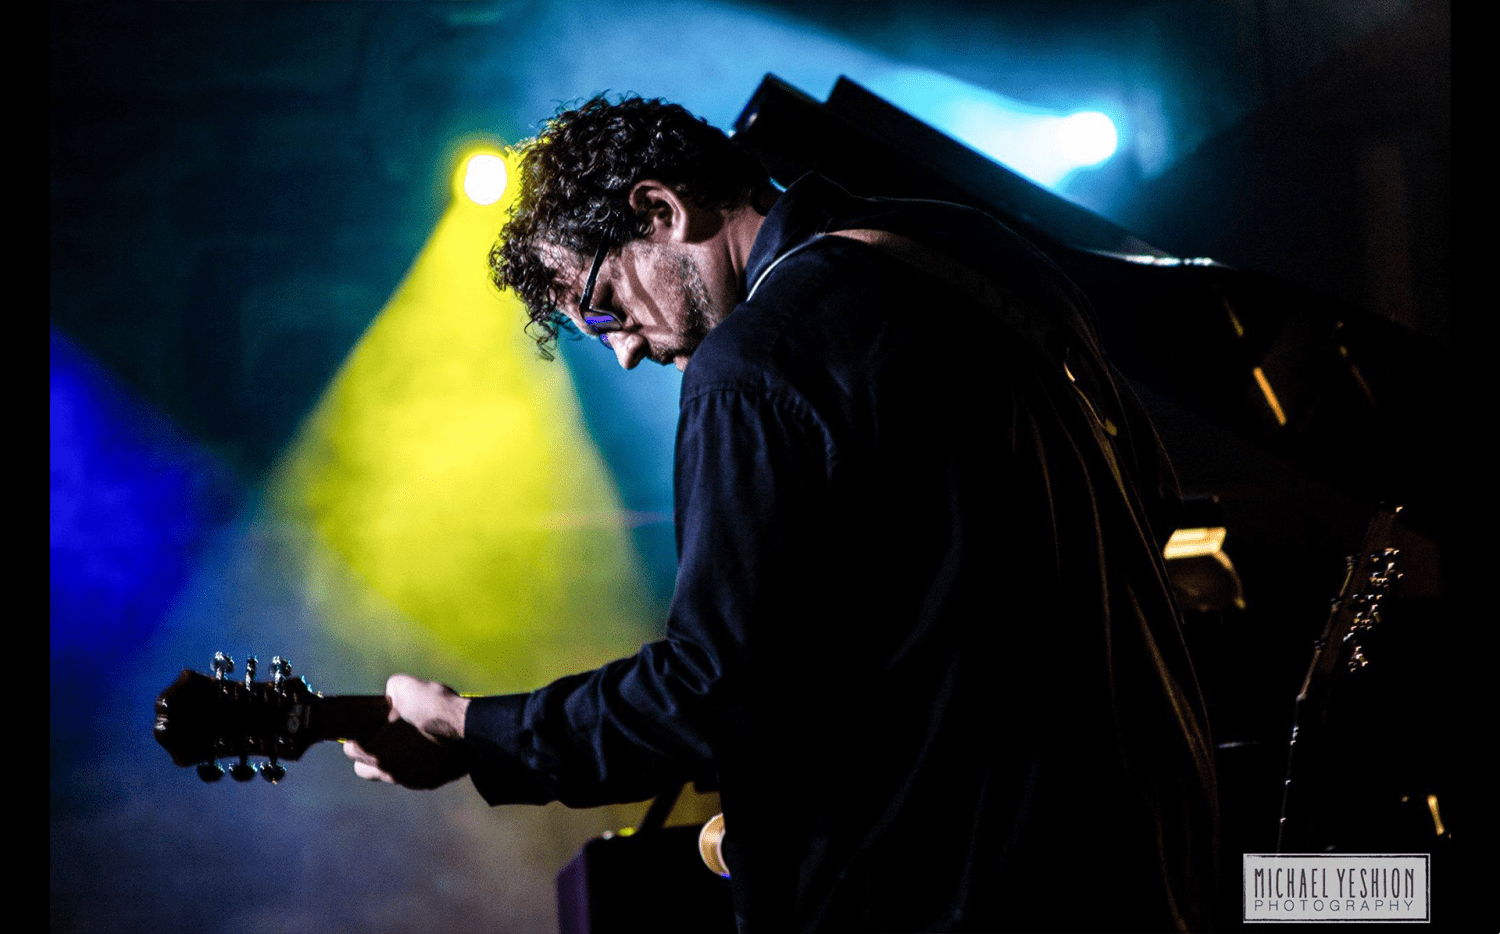 A musician plays a guitar on stage